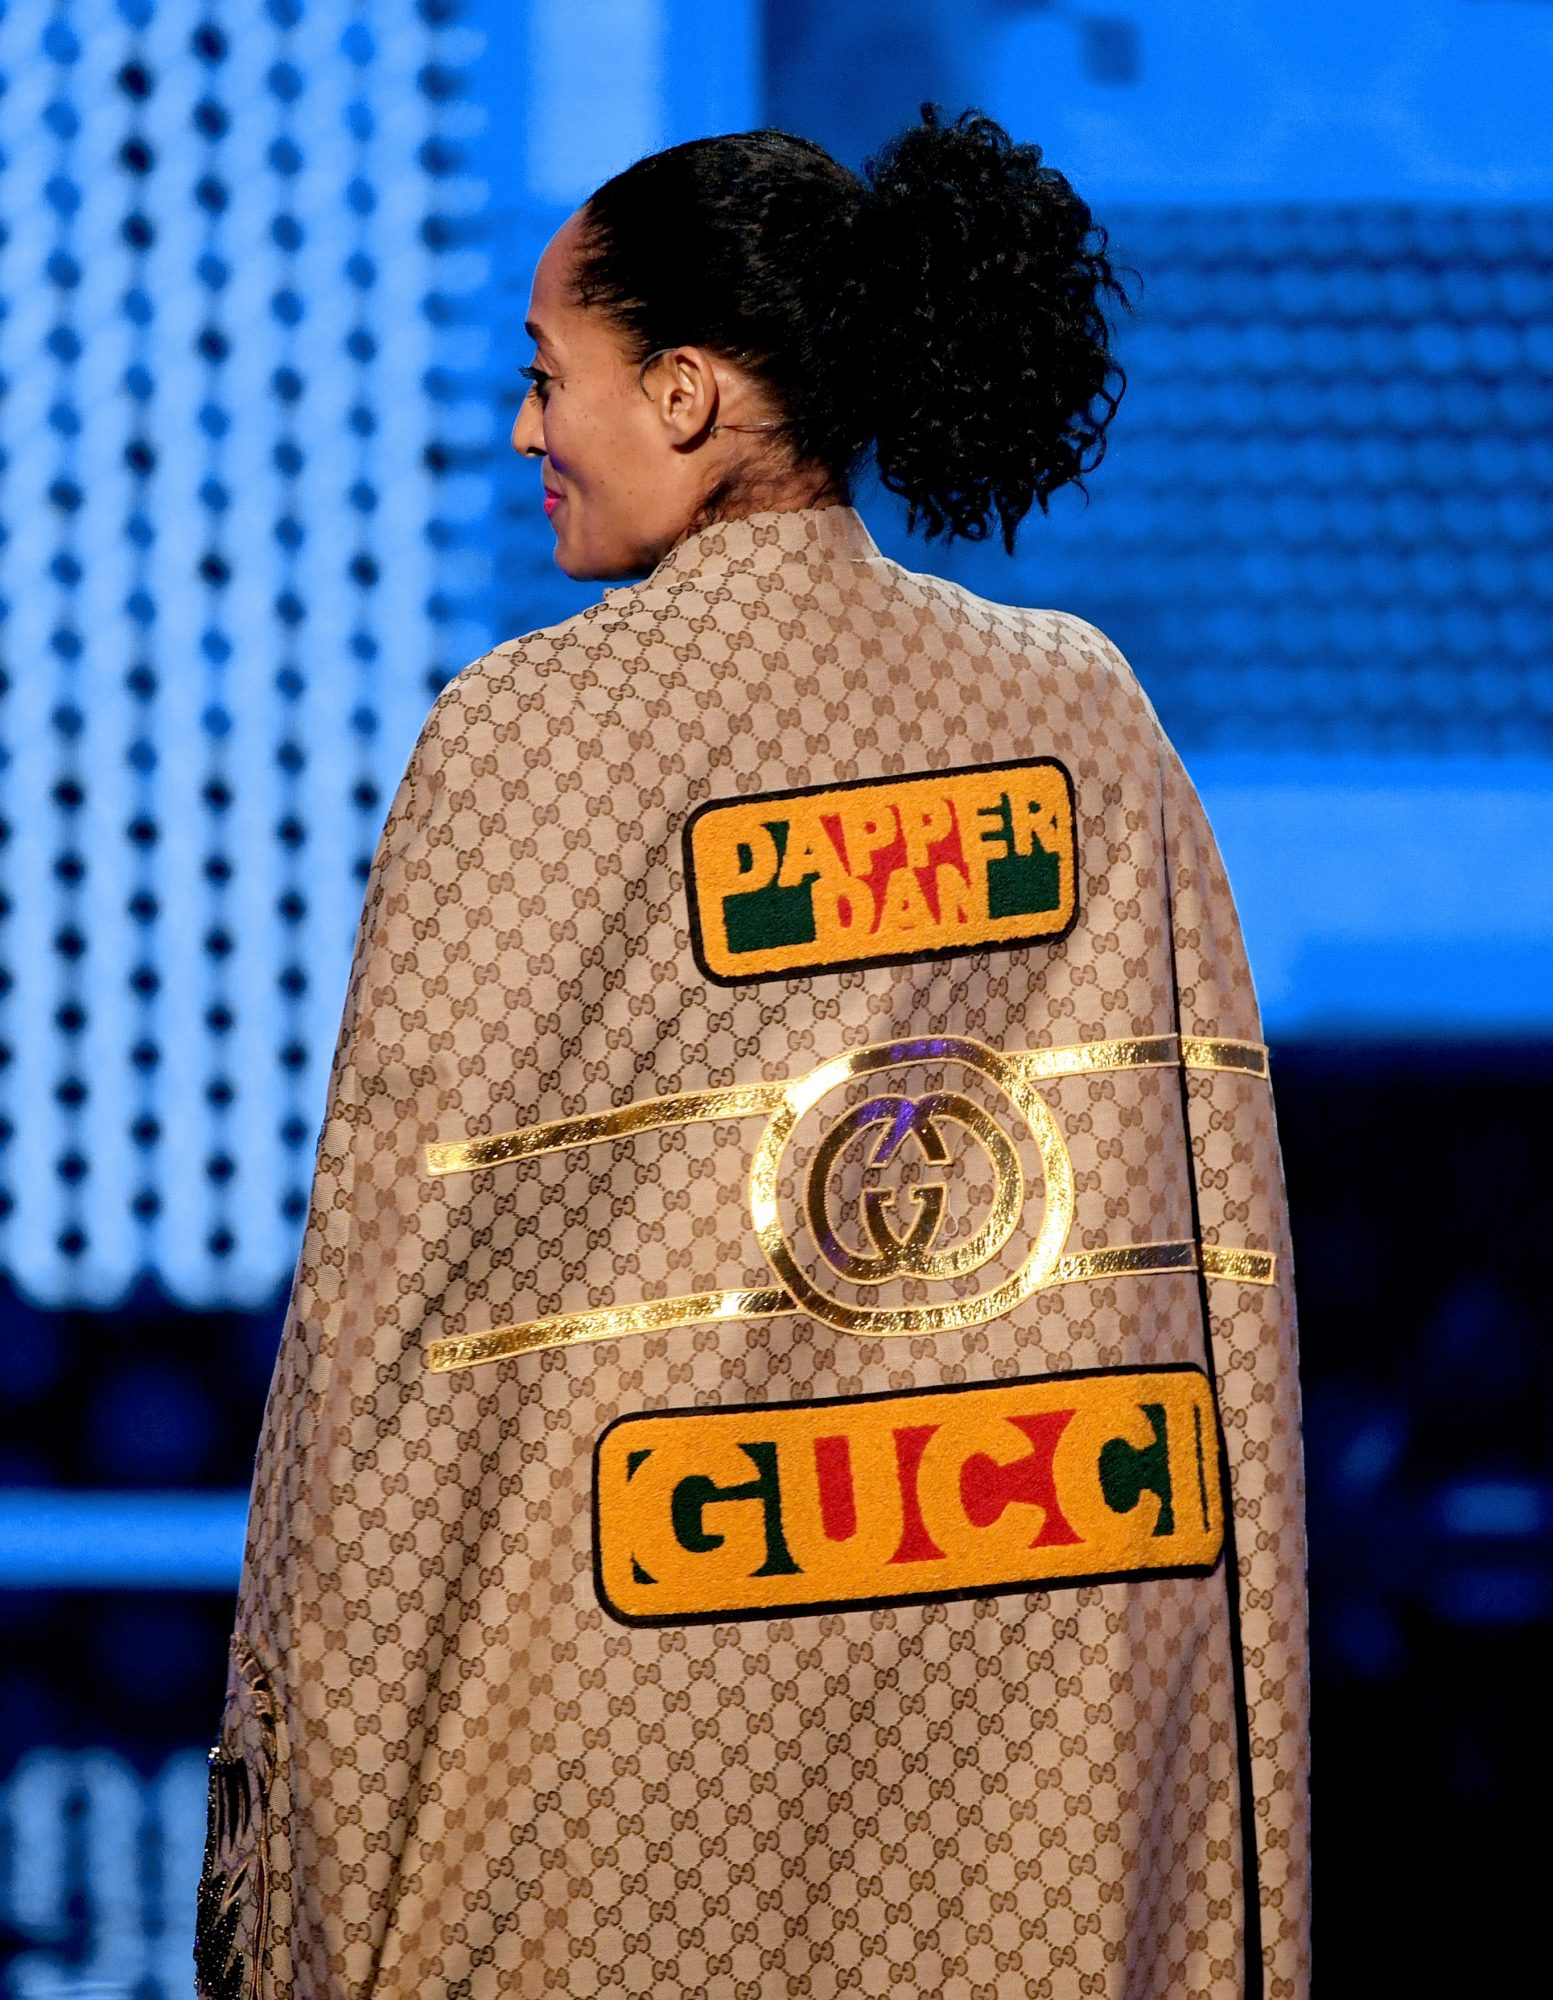 STATEMENT MAKERS: TRACEE ELLIS ROSS